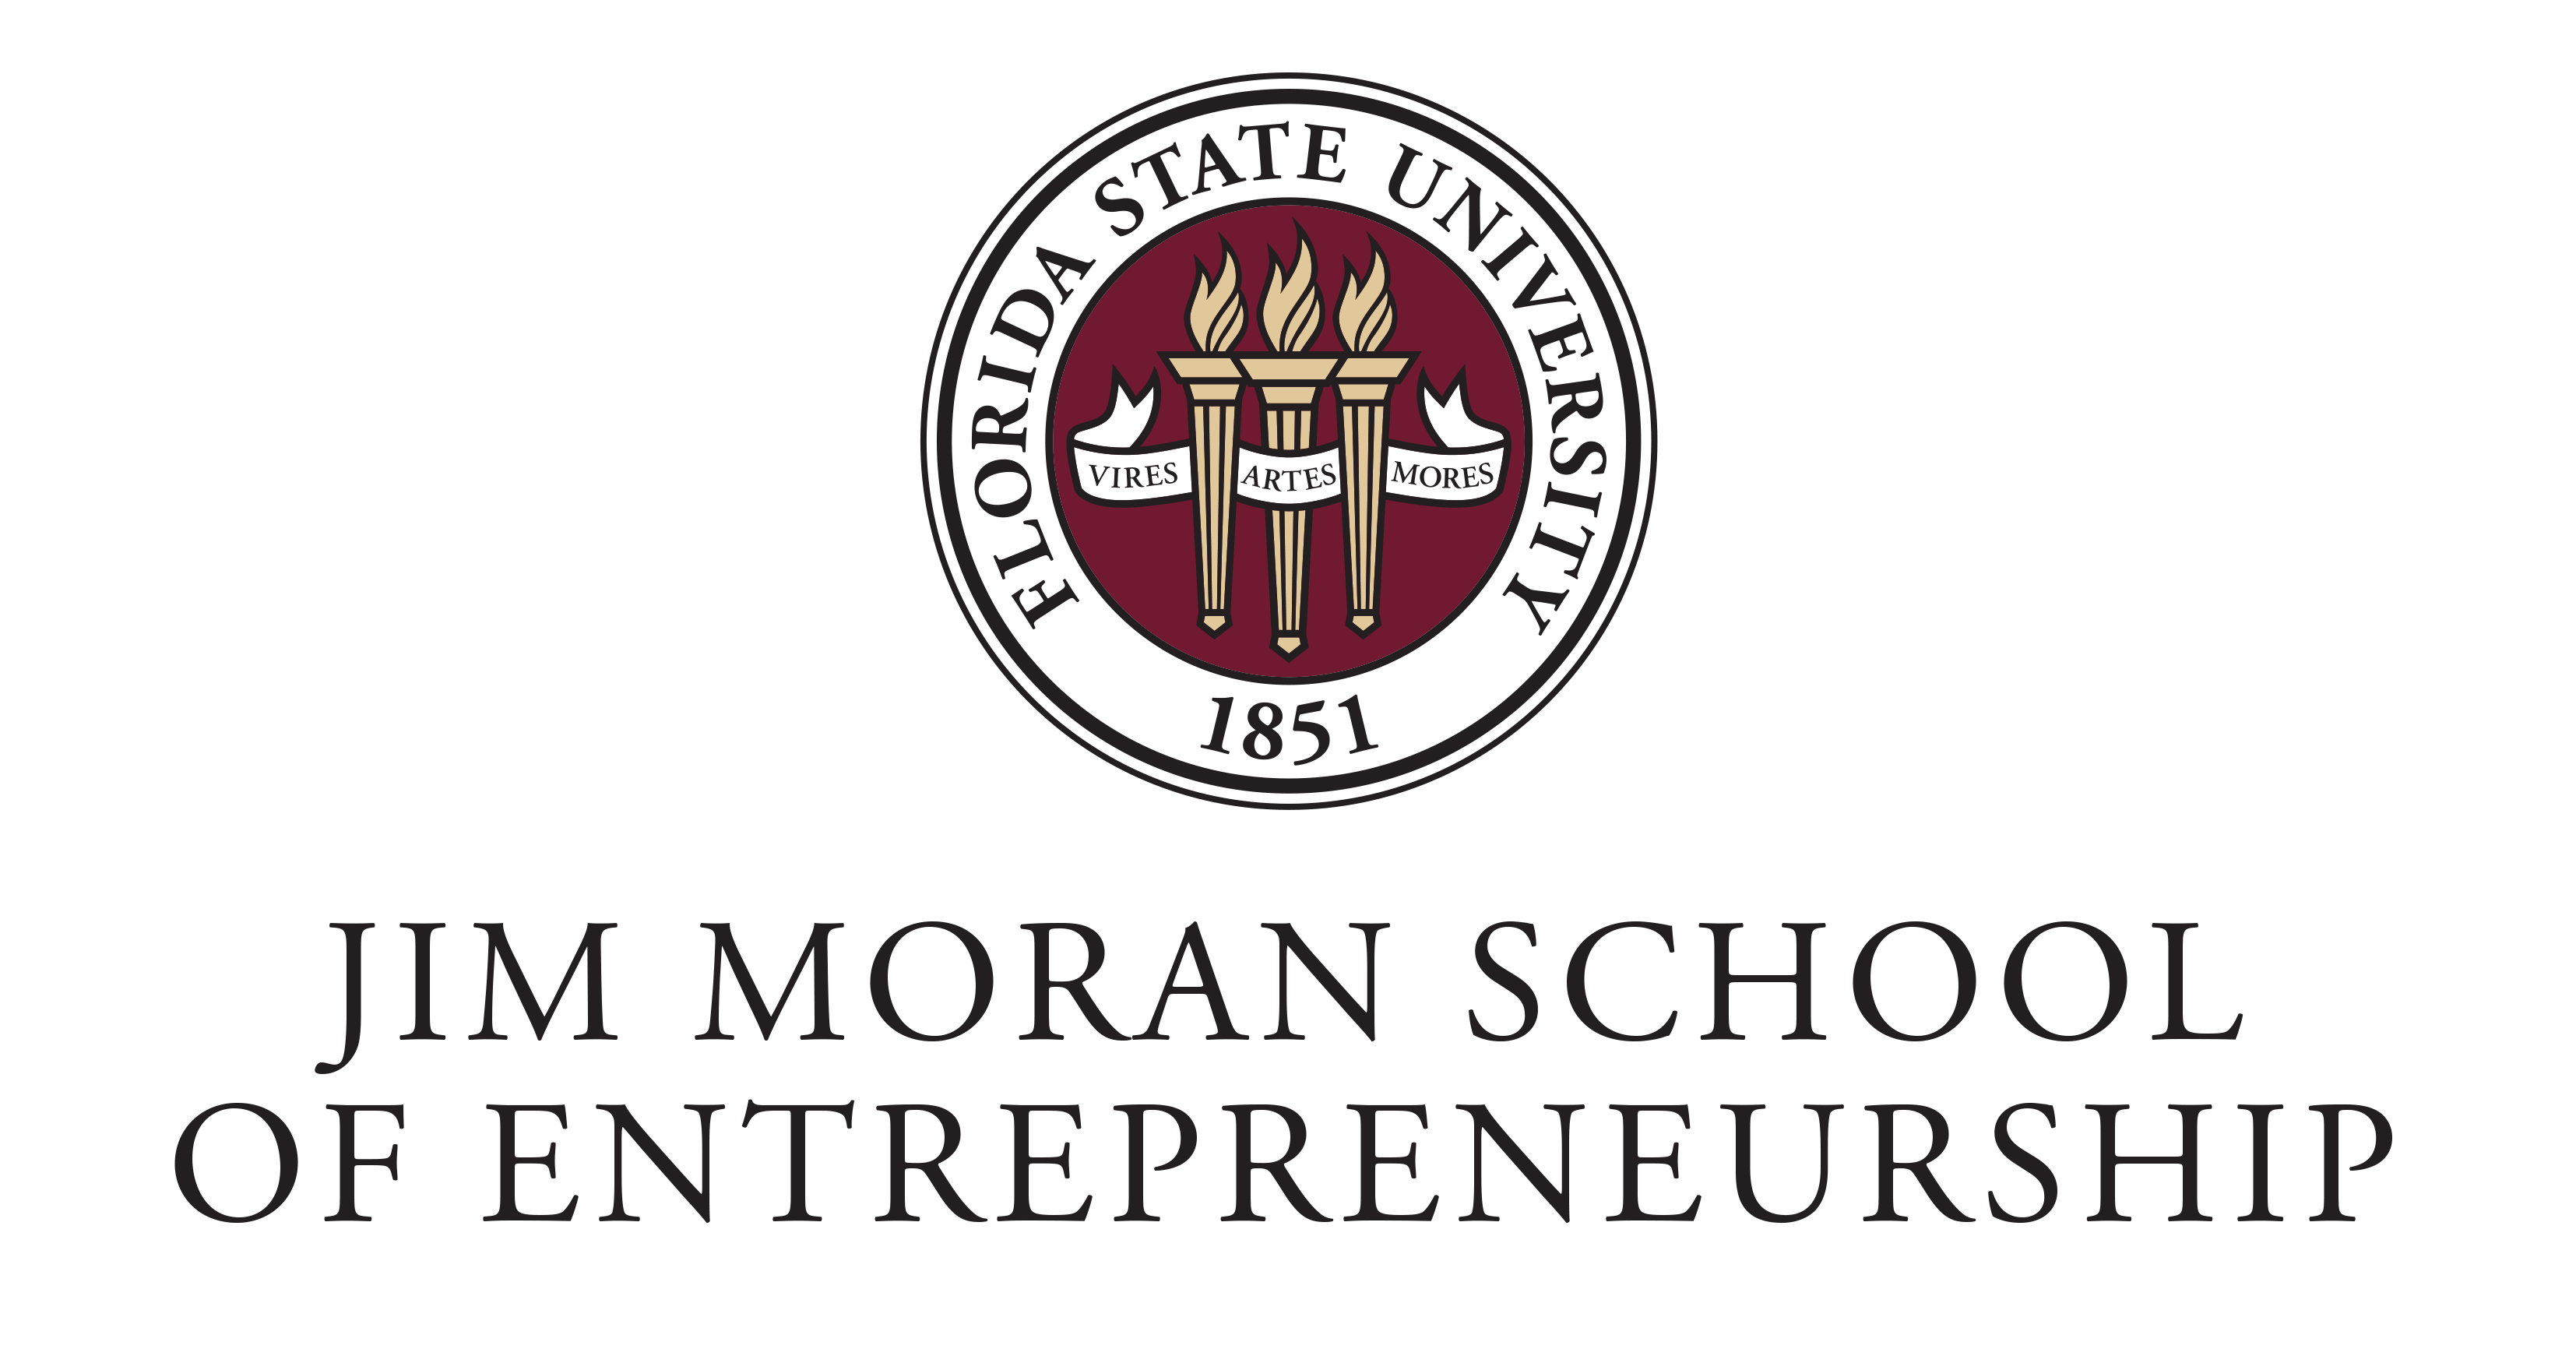 The Jim Moran School of Entrepreneurship